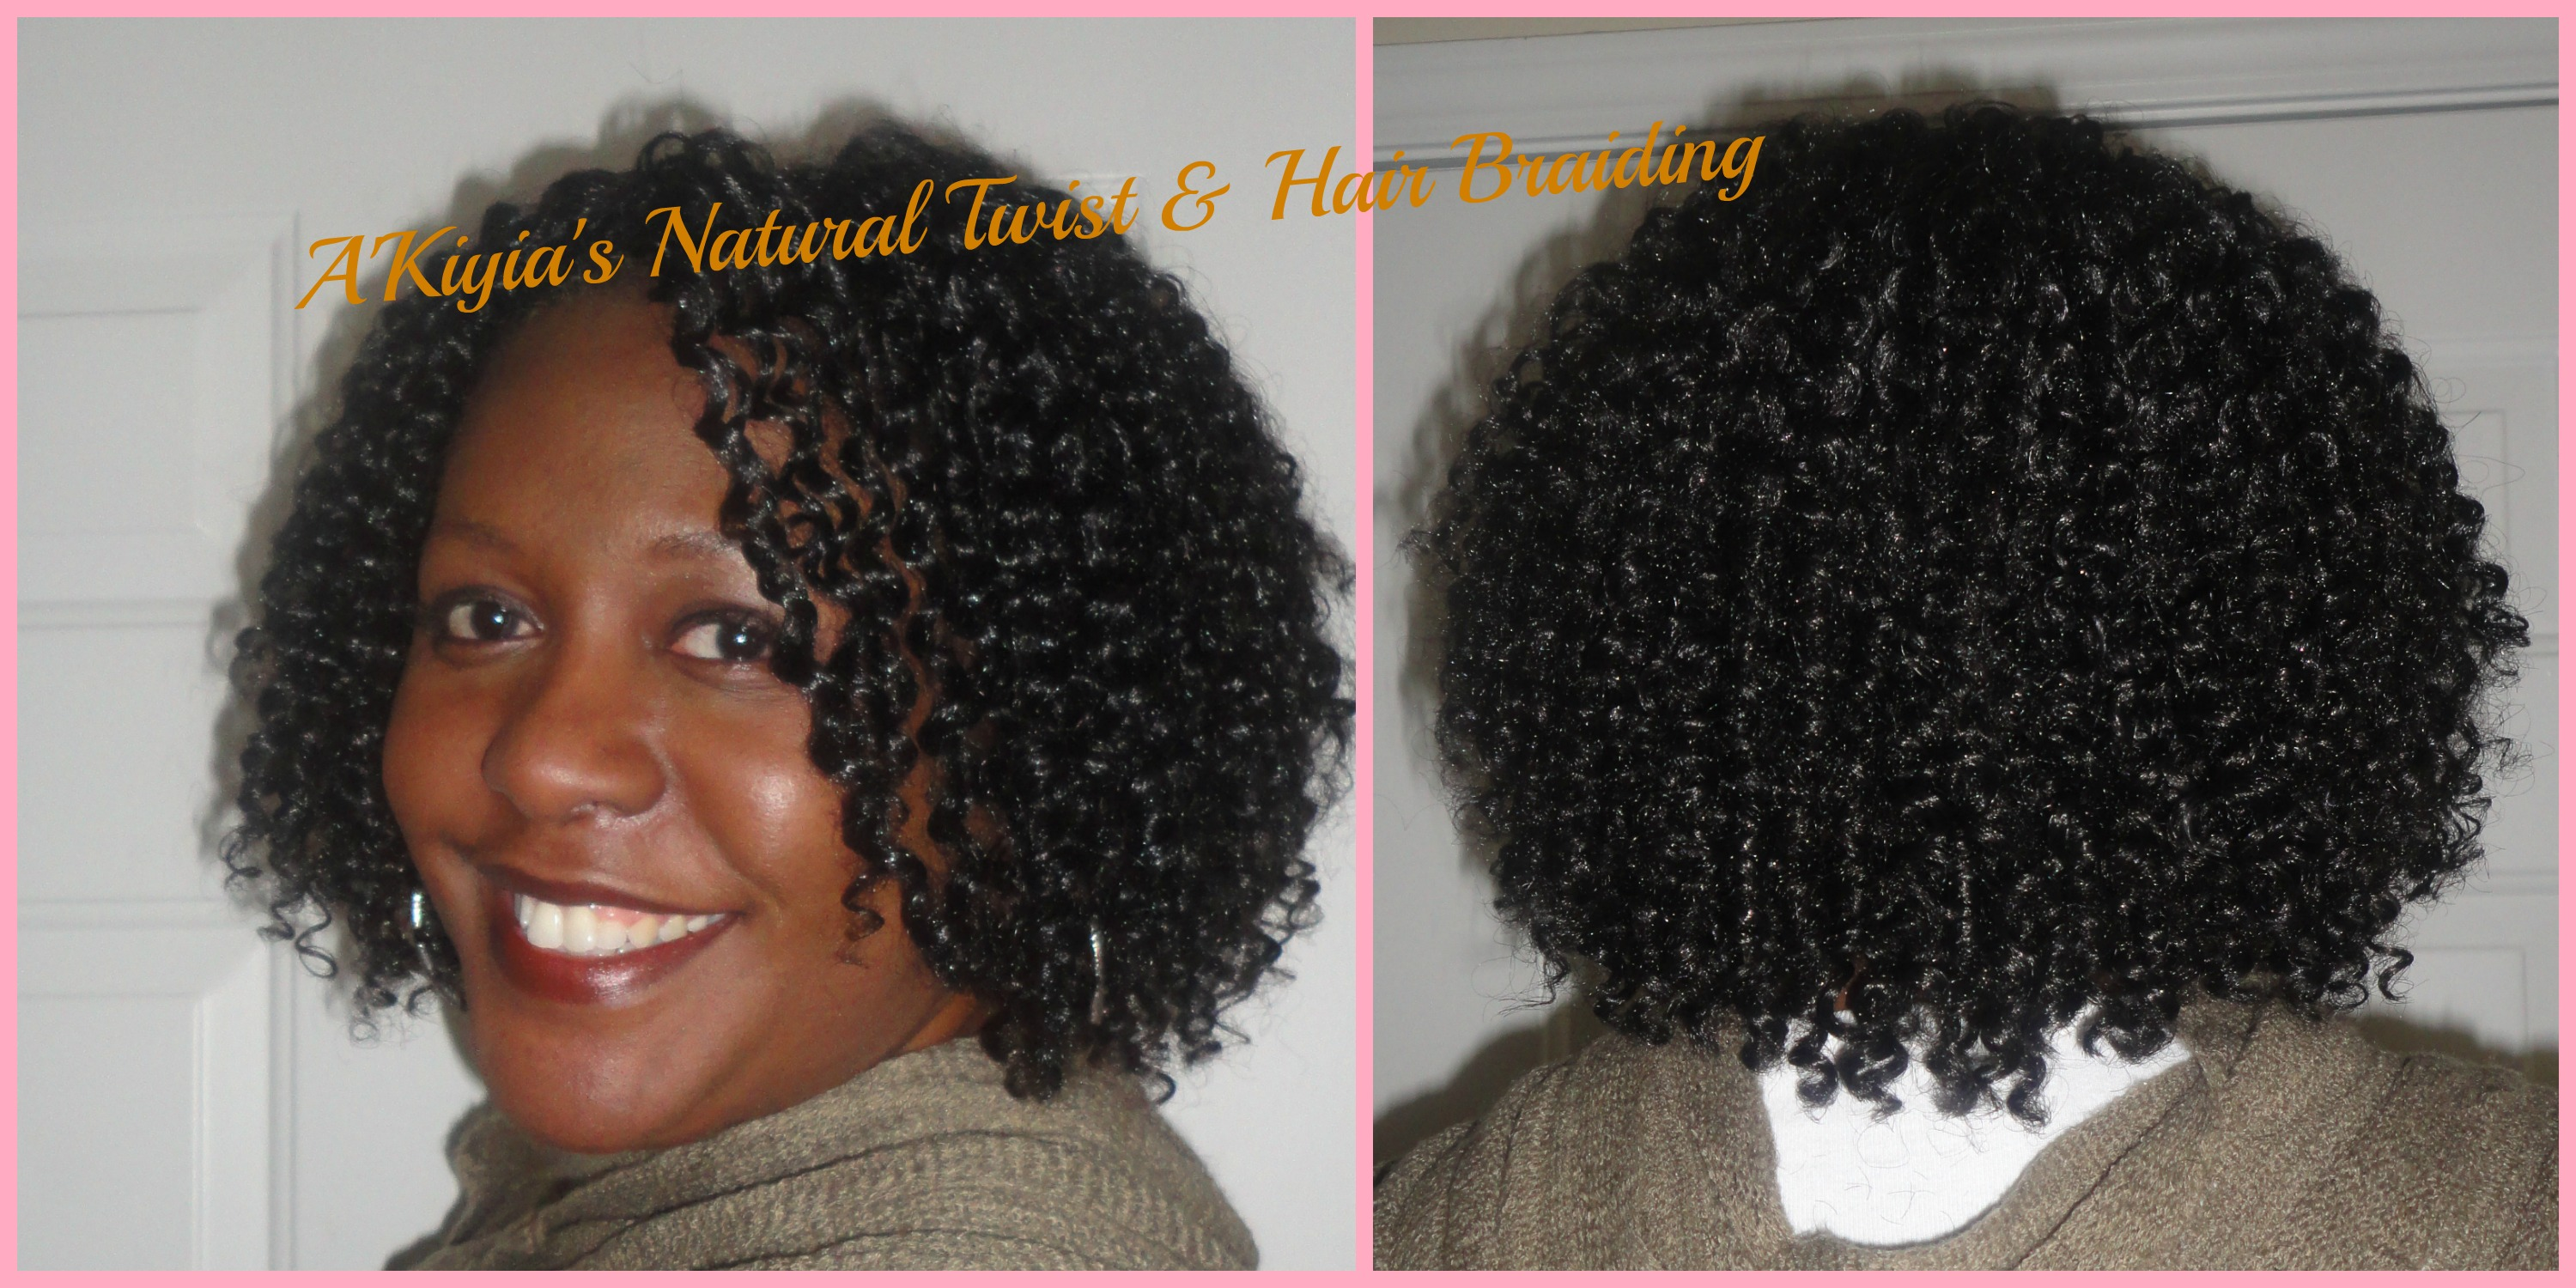 Crochet Braids Kennesaw Ga : ... by AKiyia Glenn-Kelly on AKiyias Natural Twist & Hair ...